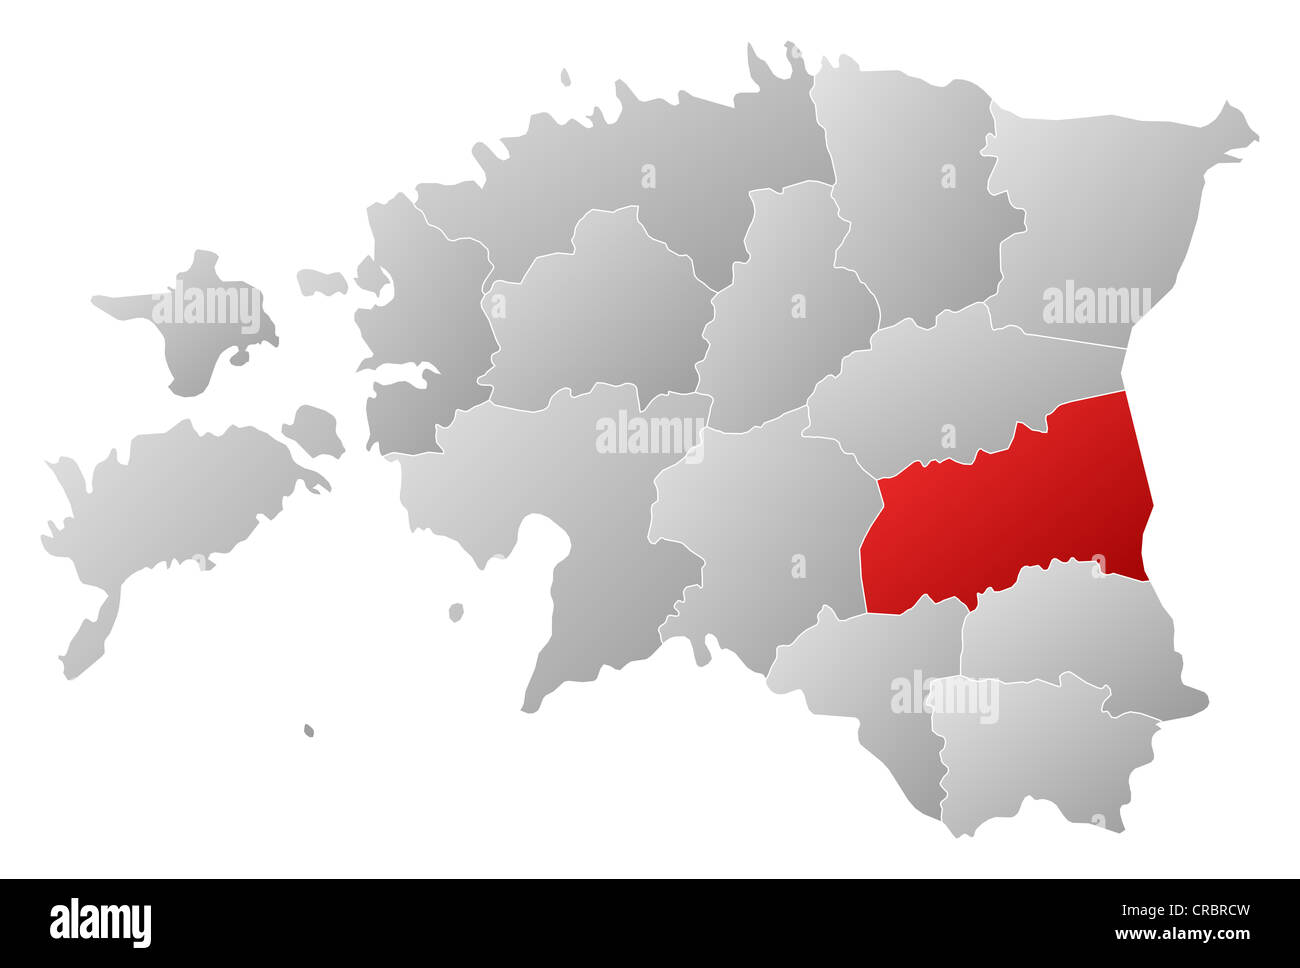 political map of estonia with the several counties where tartu is highlighted stock image